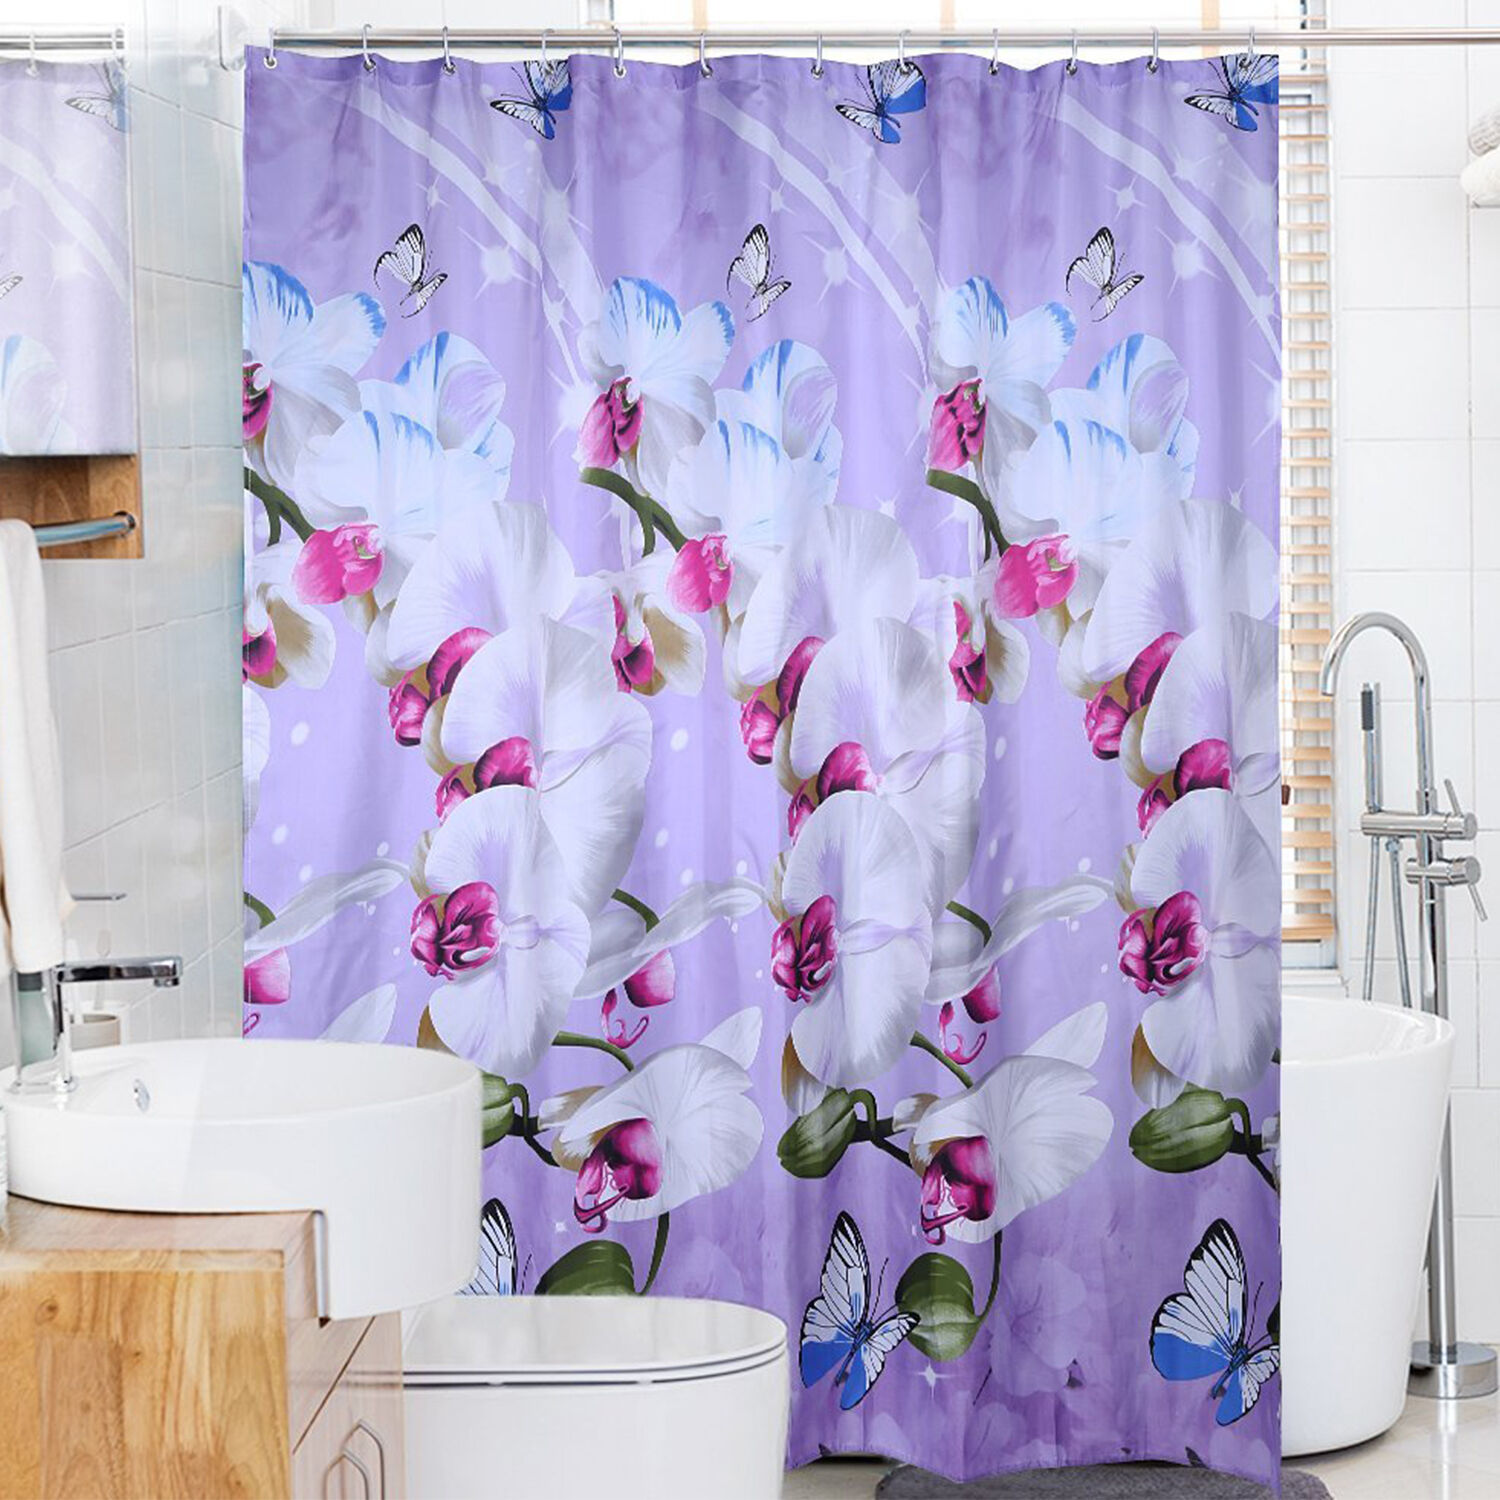 Fabric Shower Curtain Waterproof Polyester 72 X72 Flower Butterfly Purple Hooks